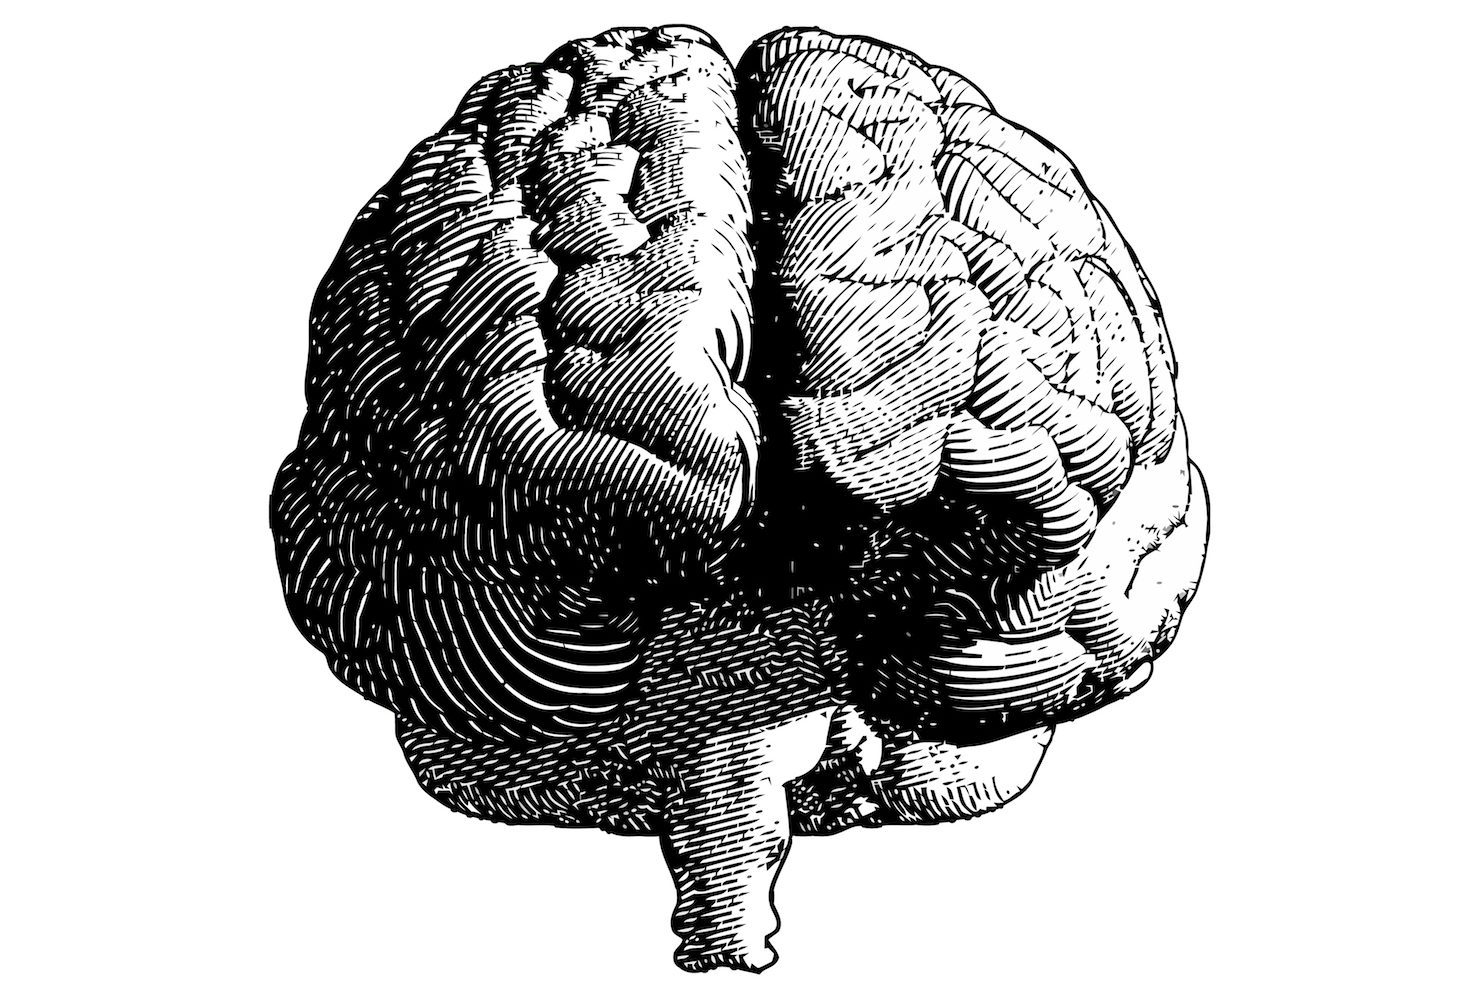 Monochrome engraving illustration of the front of the brain